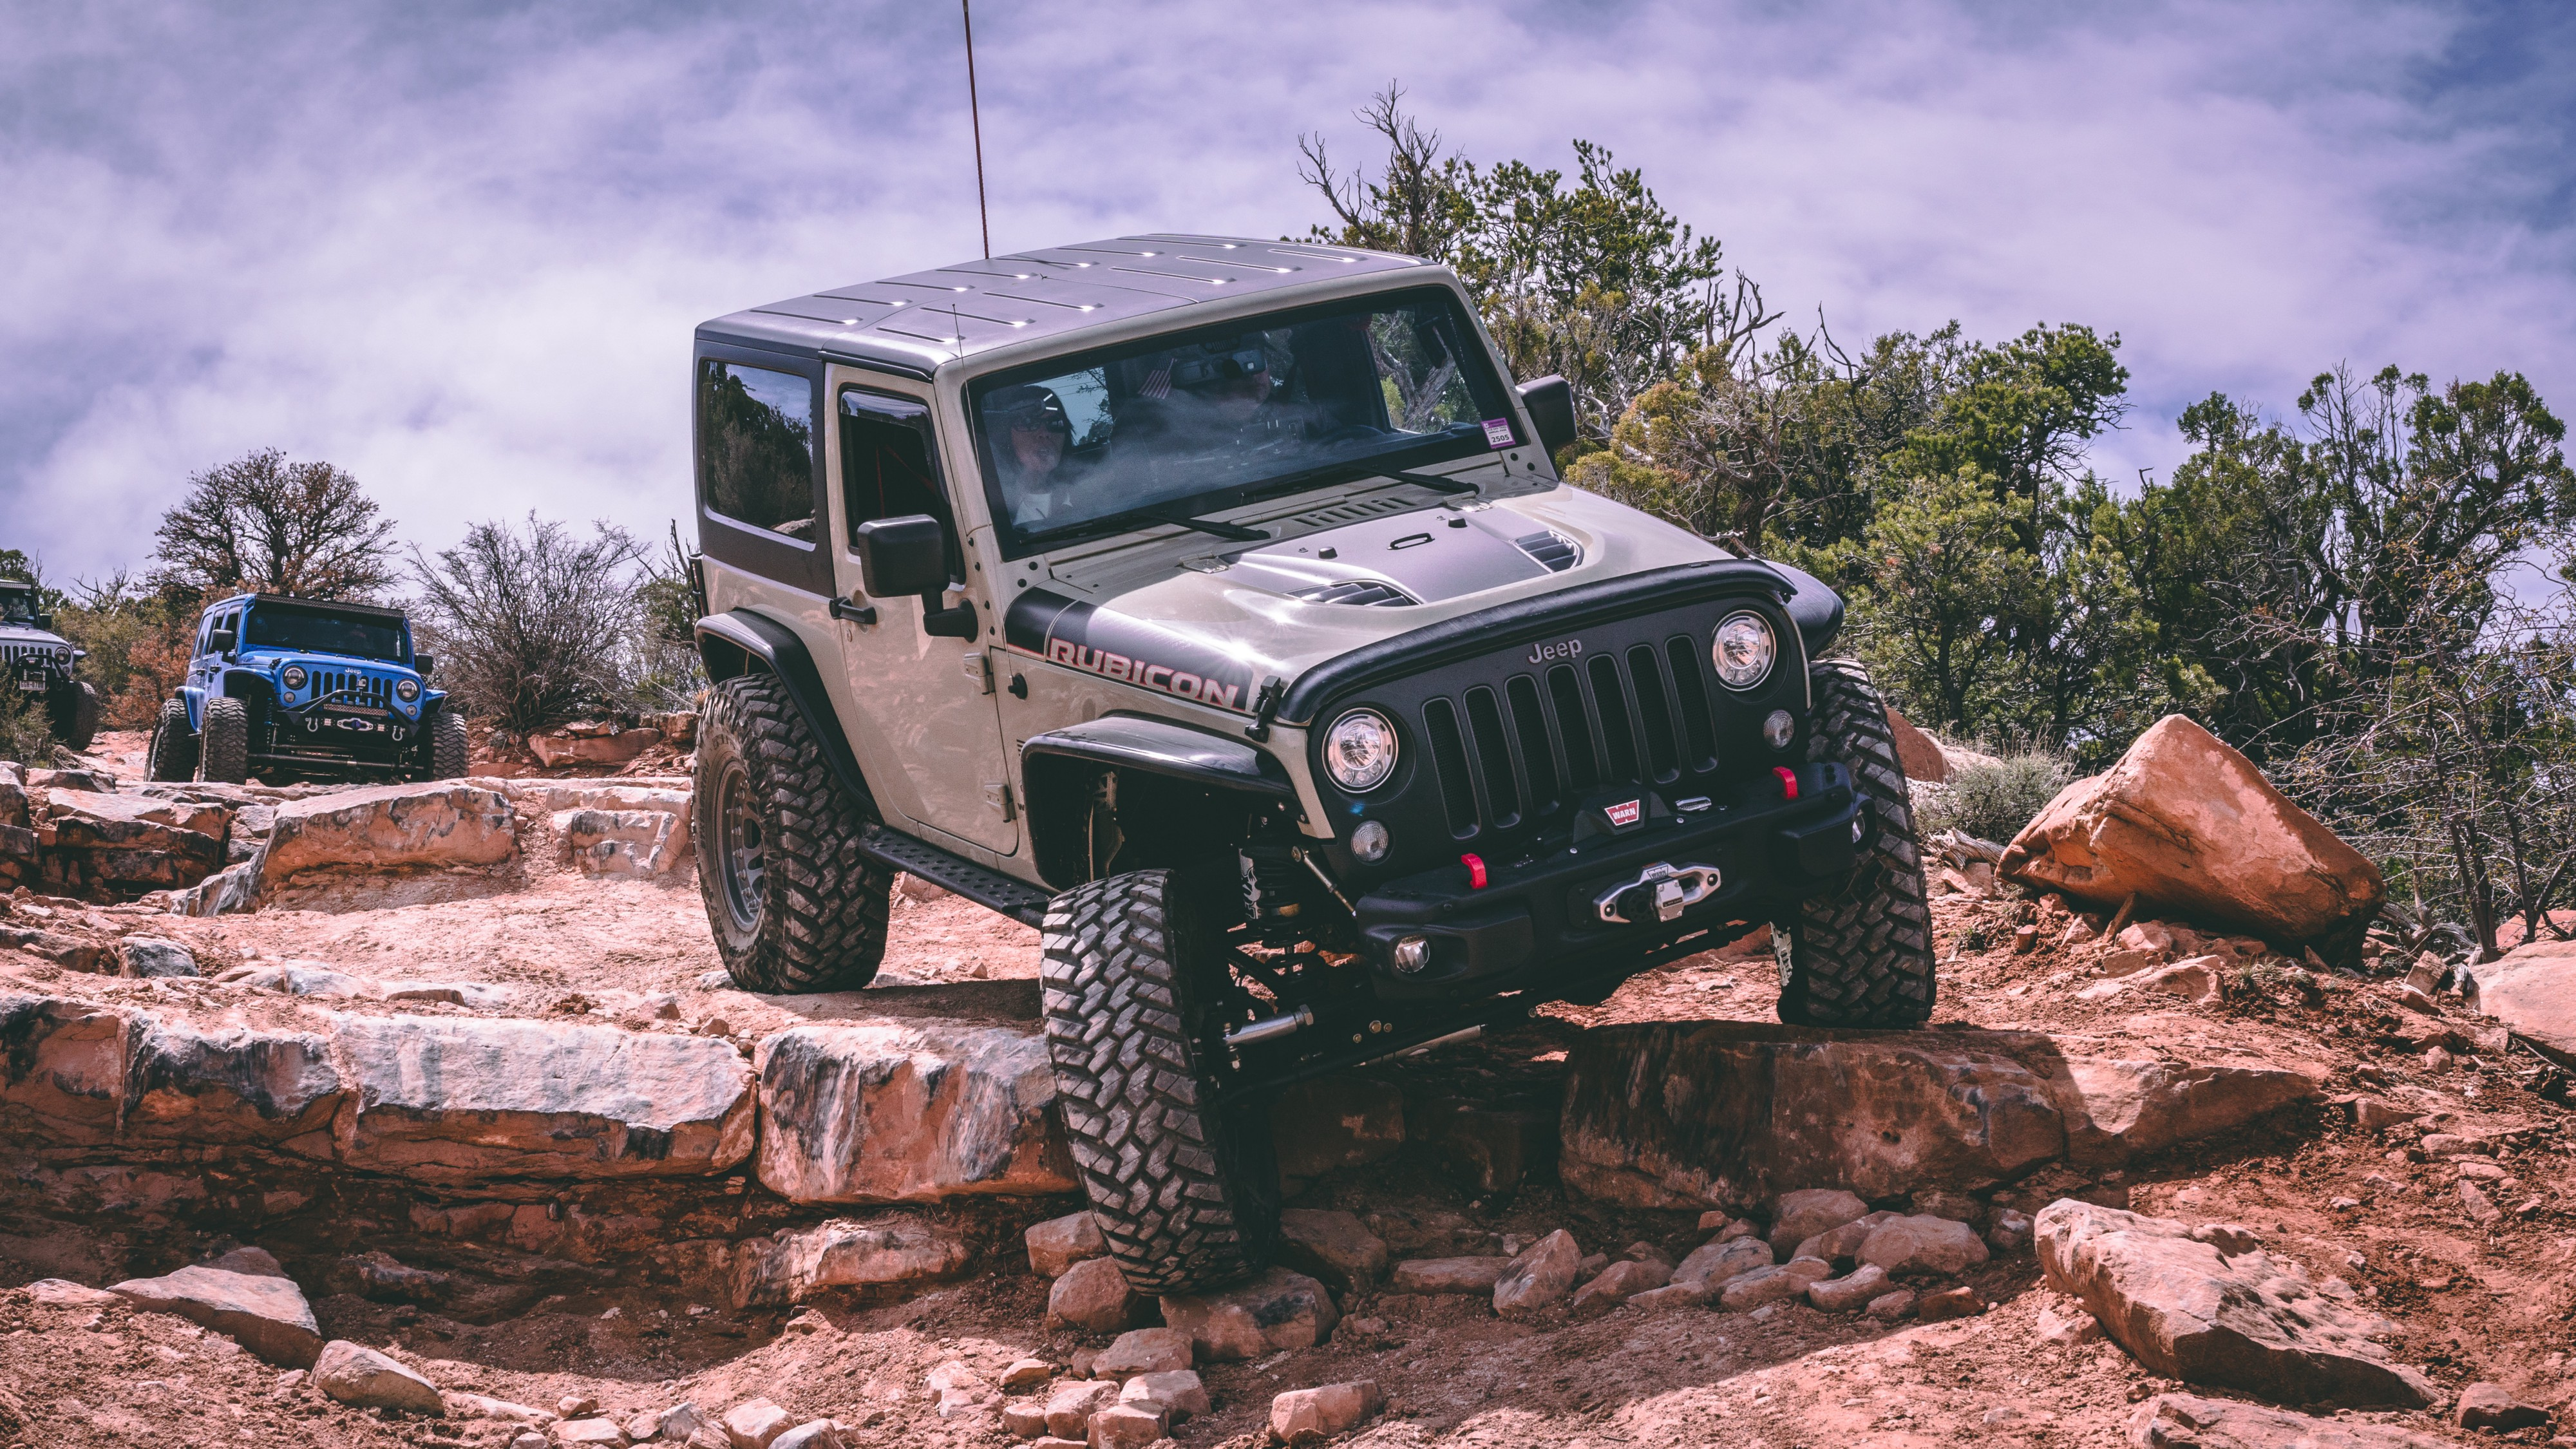 Jeep wrangler rubicon cover image for Actor test drive section